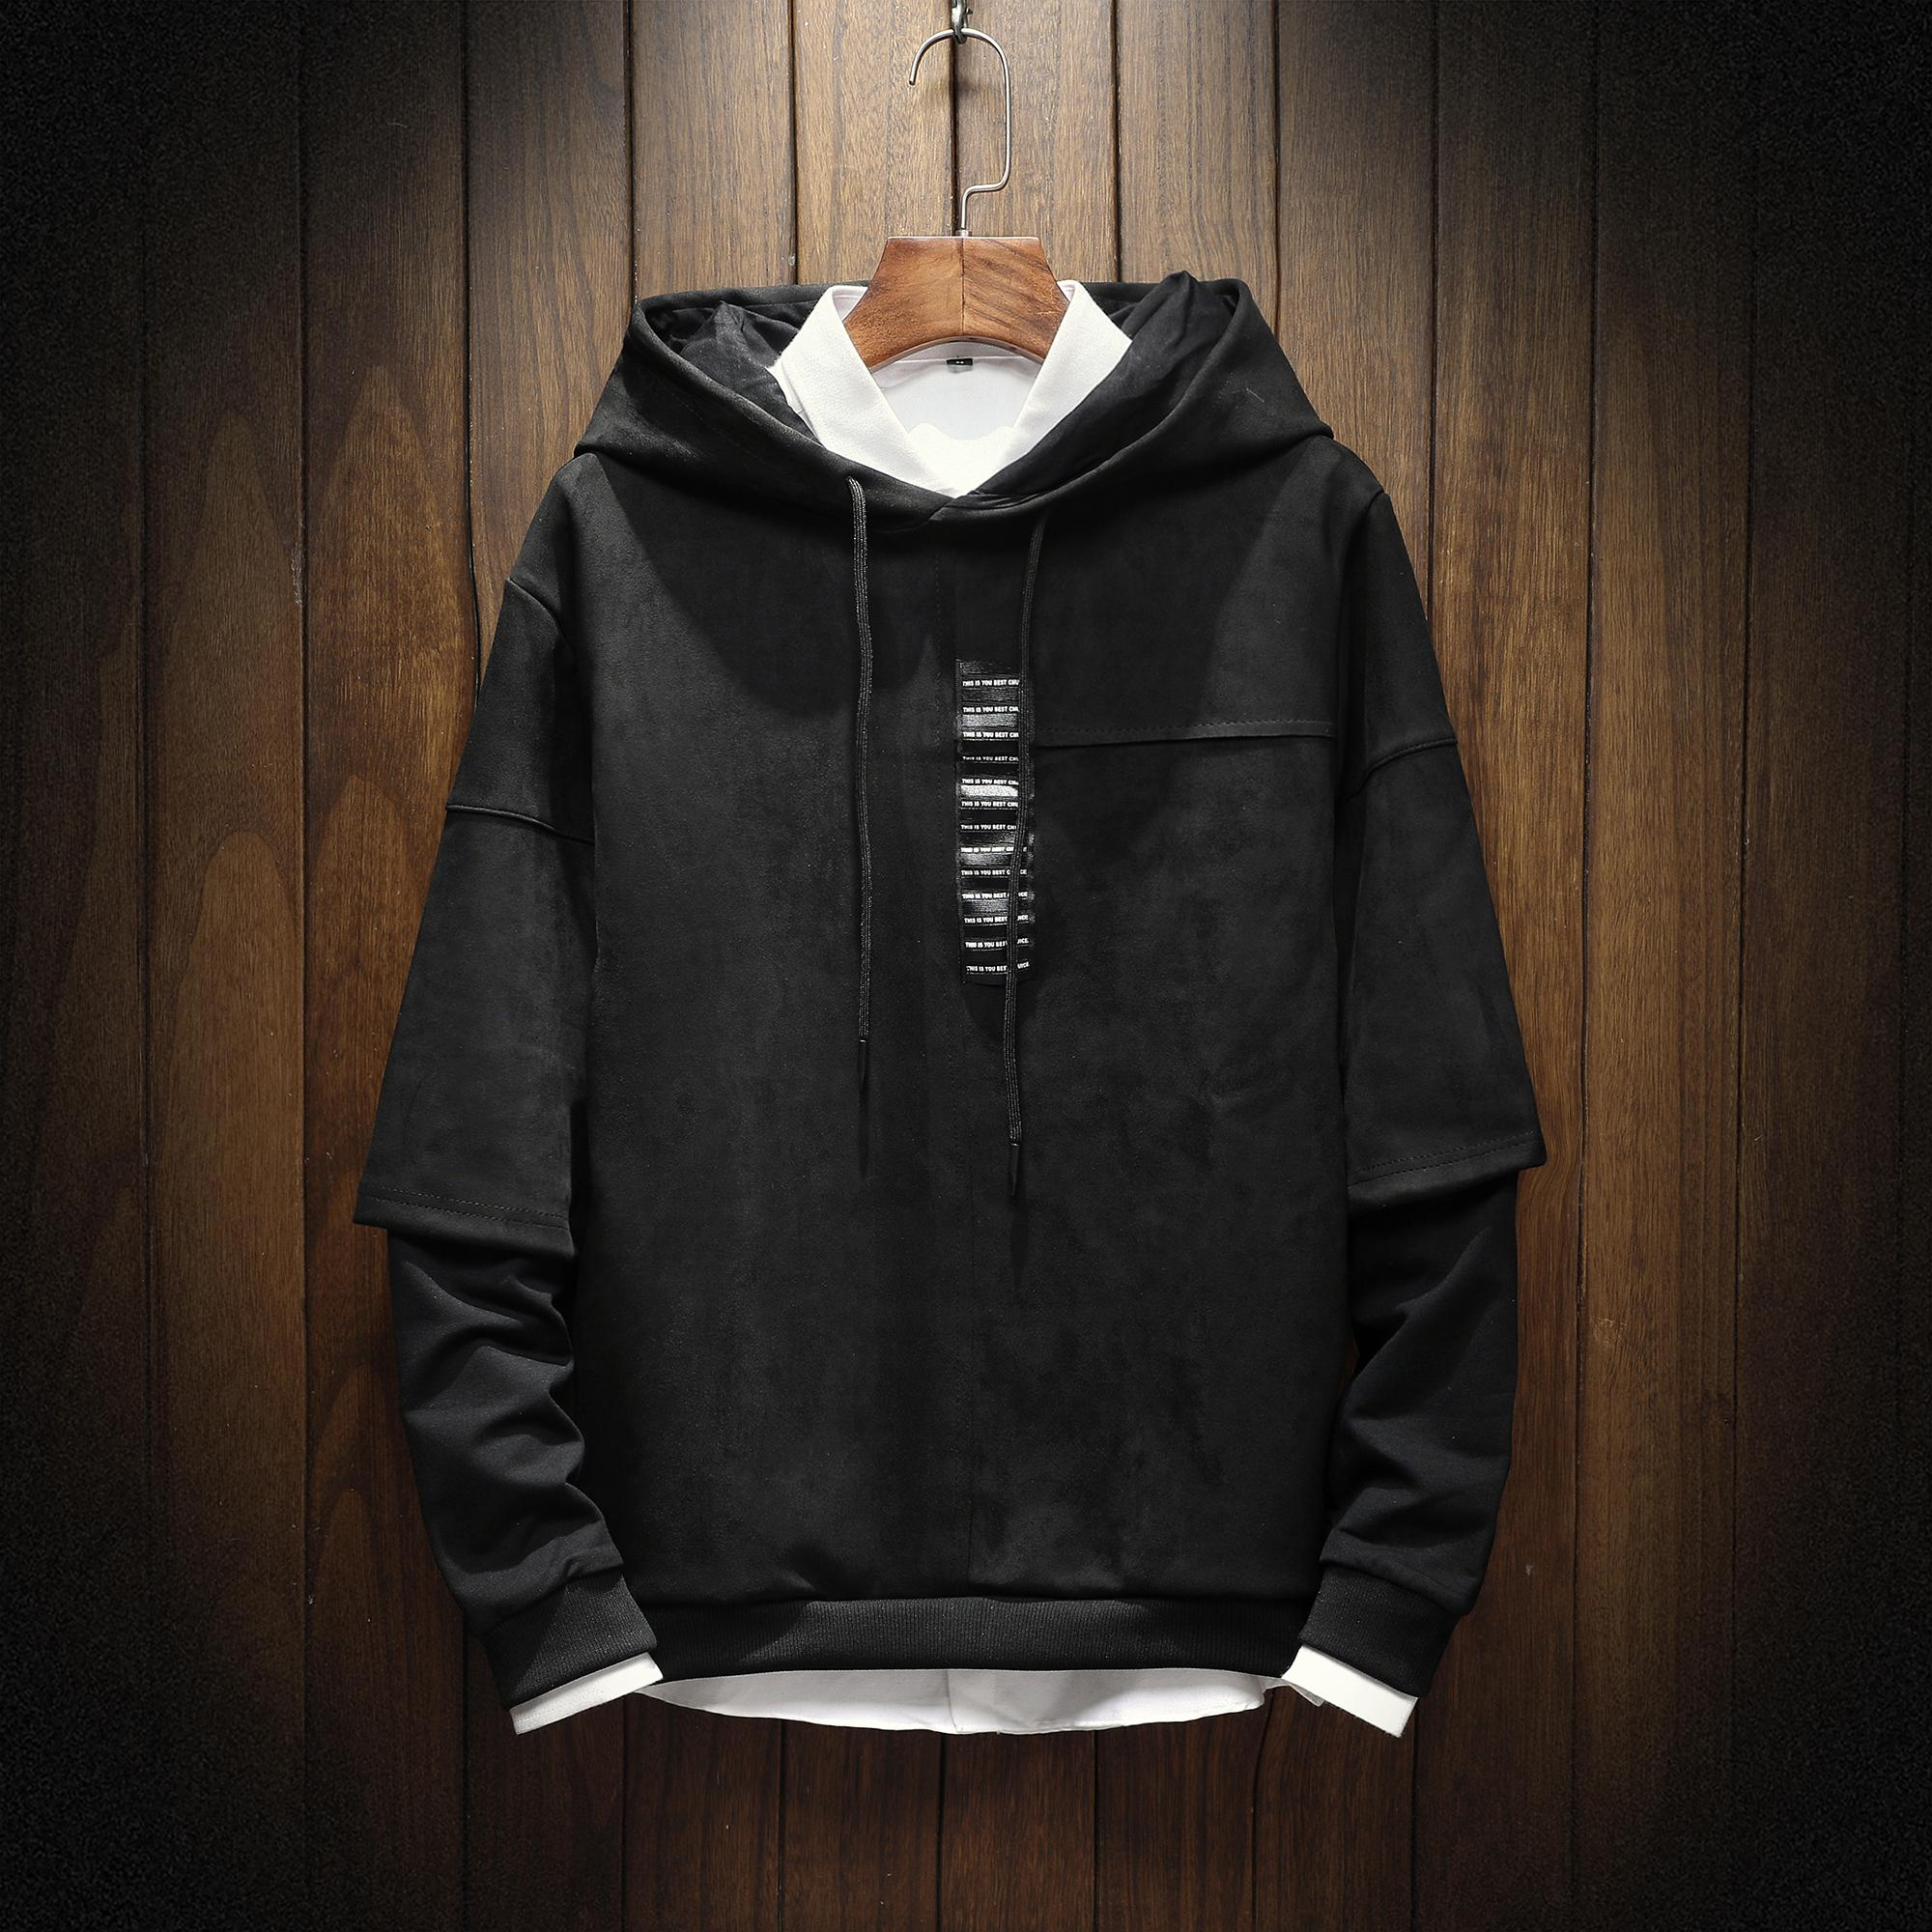 2018 New Mens Hoodies and Sweatshirts Hooded Sweatshirts Male Clothing Fashion For Men High quality trend Spell sleeve Hoodies